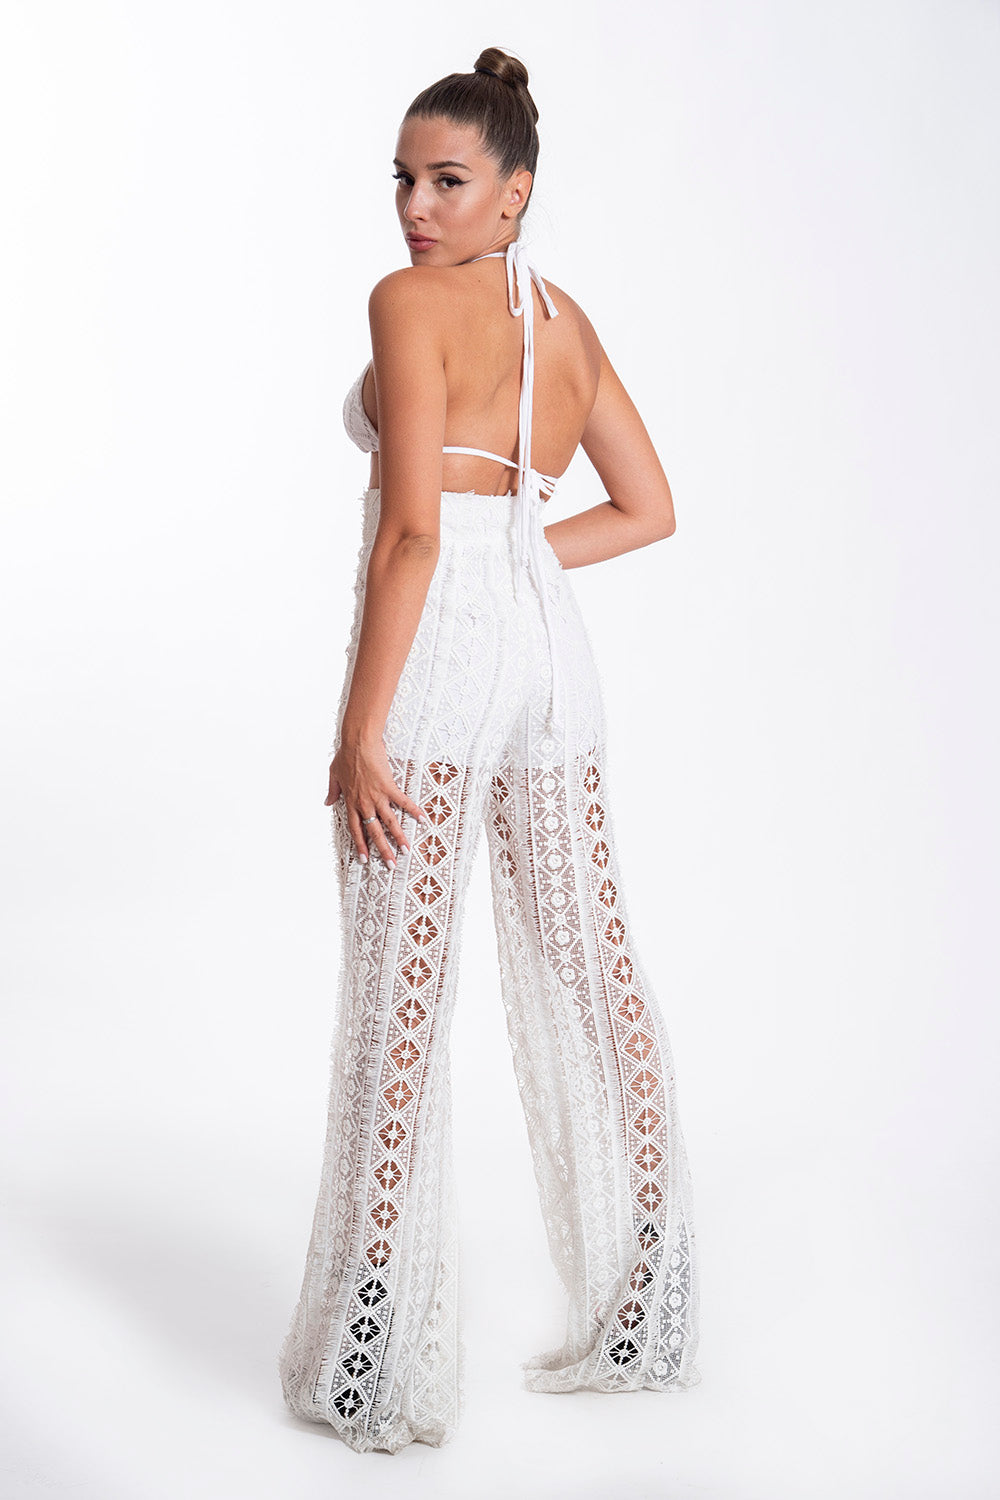 Nidodileda laser cut white patterned trousers